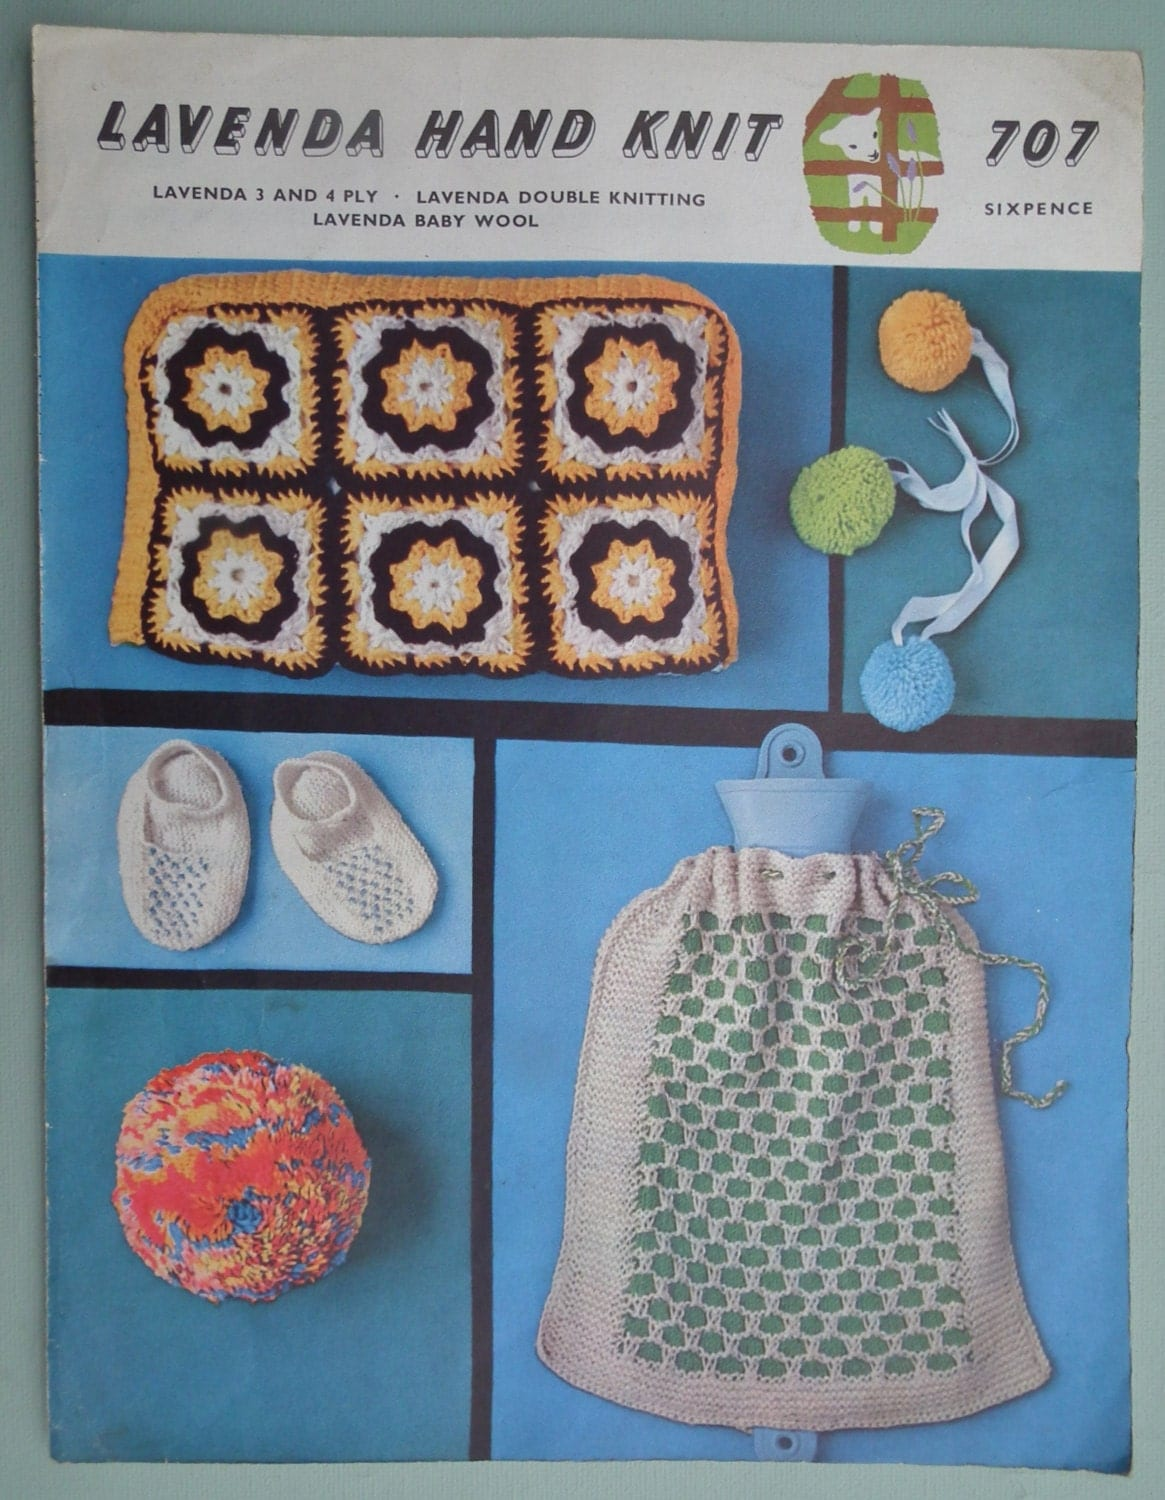 Vintage Tea Cosy Knitting Patterns : Vintage Knitting Crochet Patterns Tea Cosy Hot Water Bottle